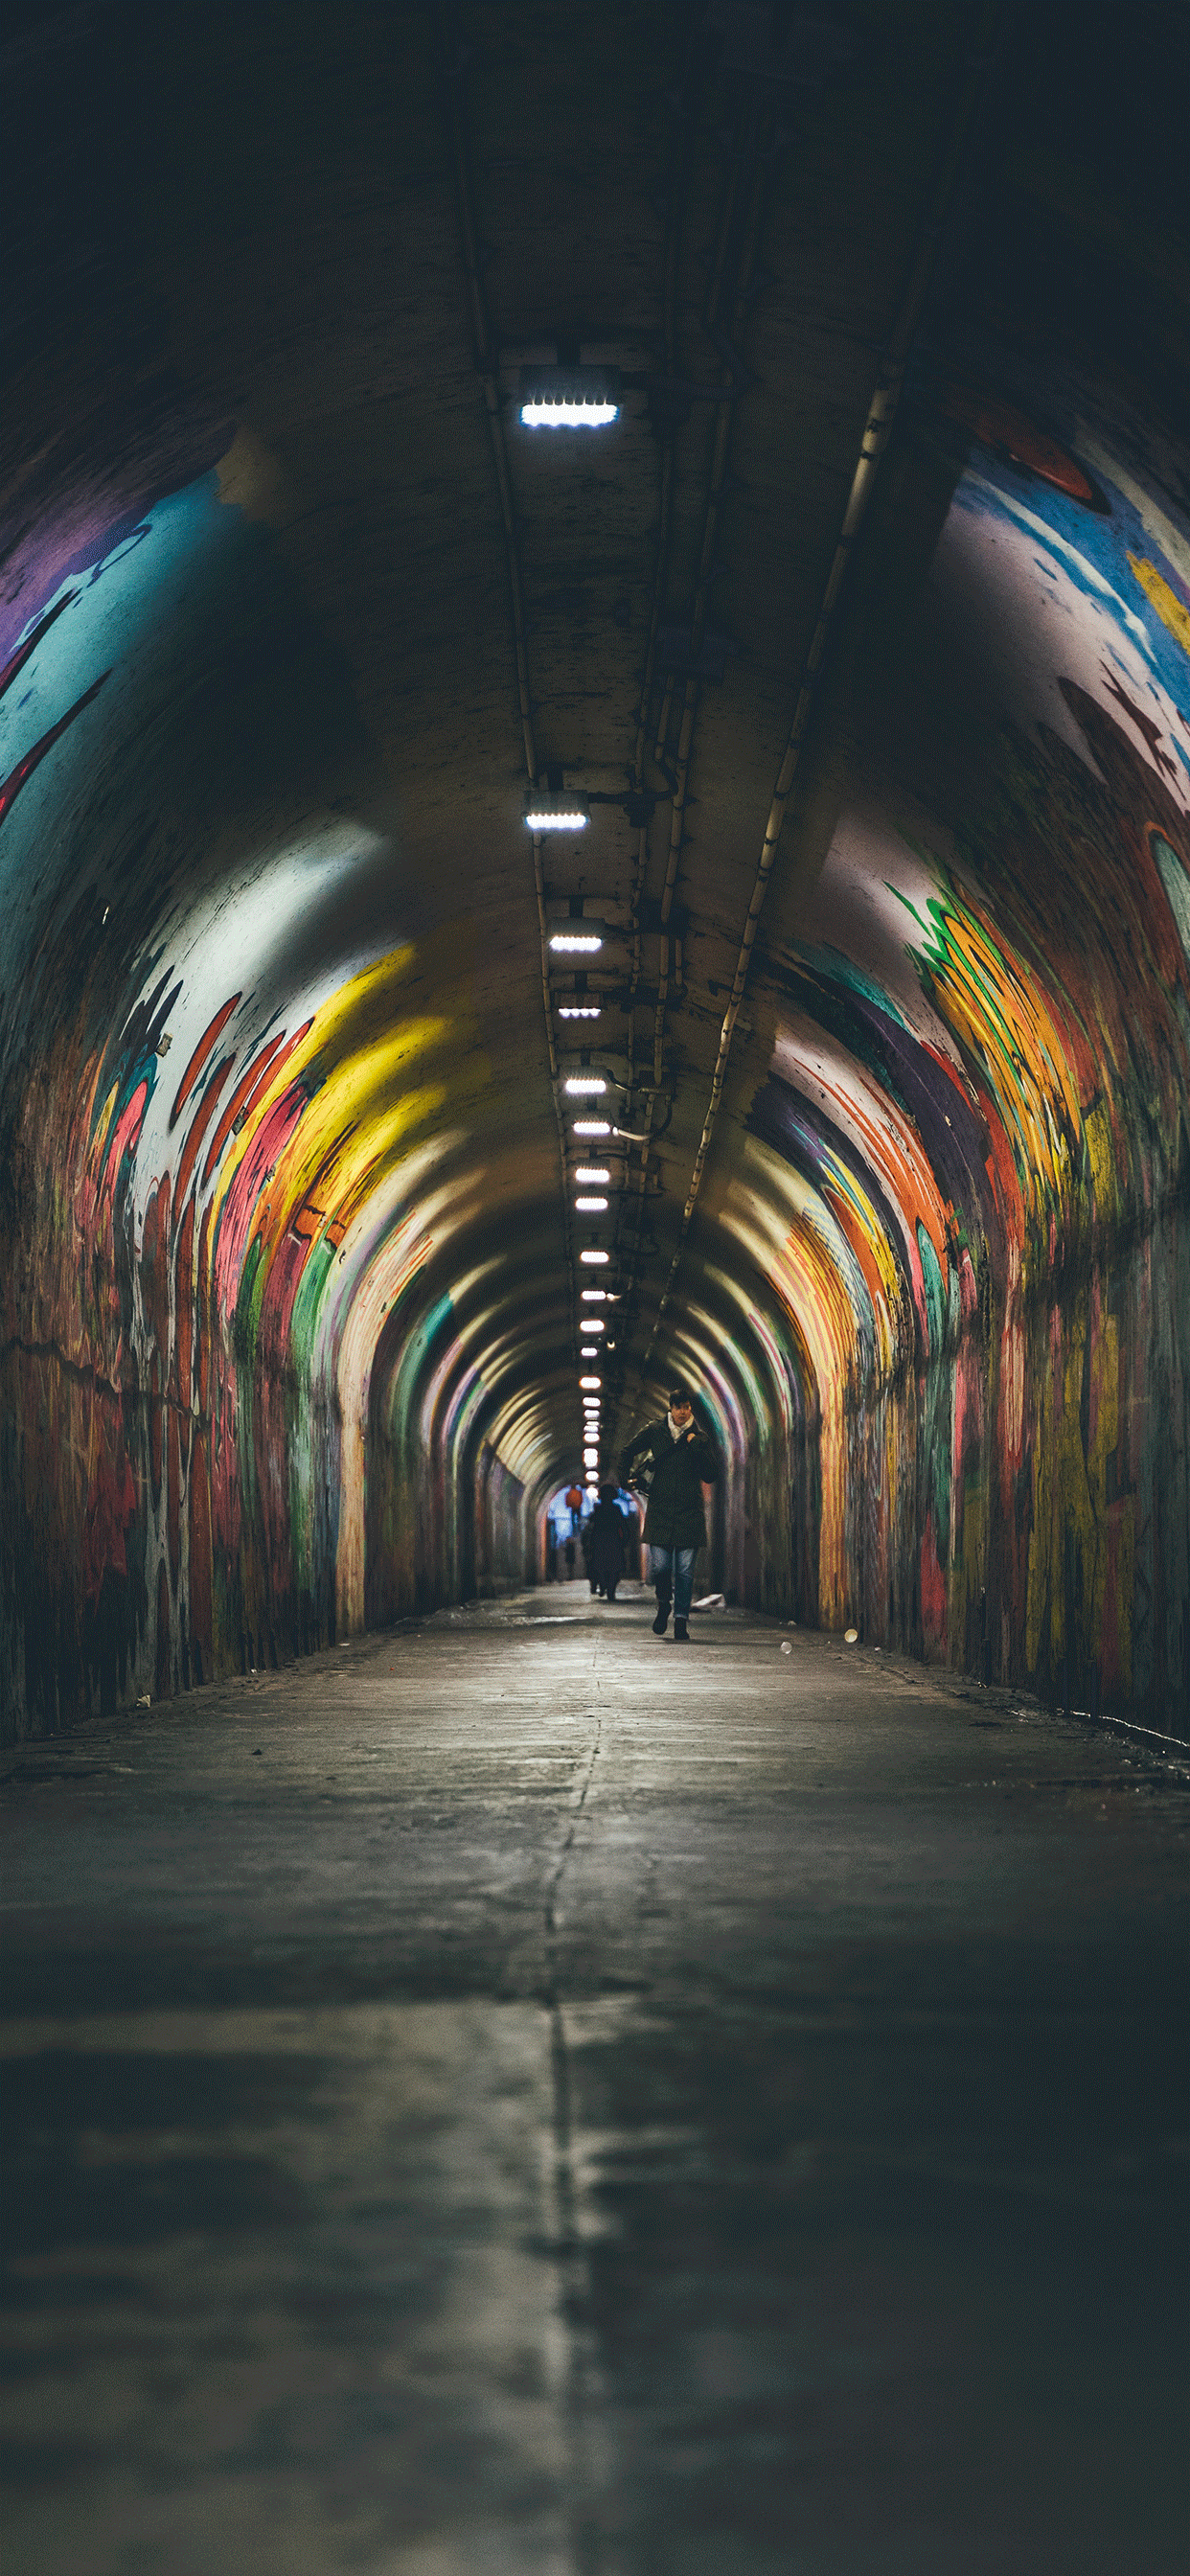 iPhone wallpapers tunnel new york Fonds d'écran iPhone du 31/05/2019